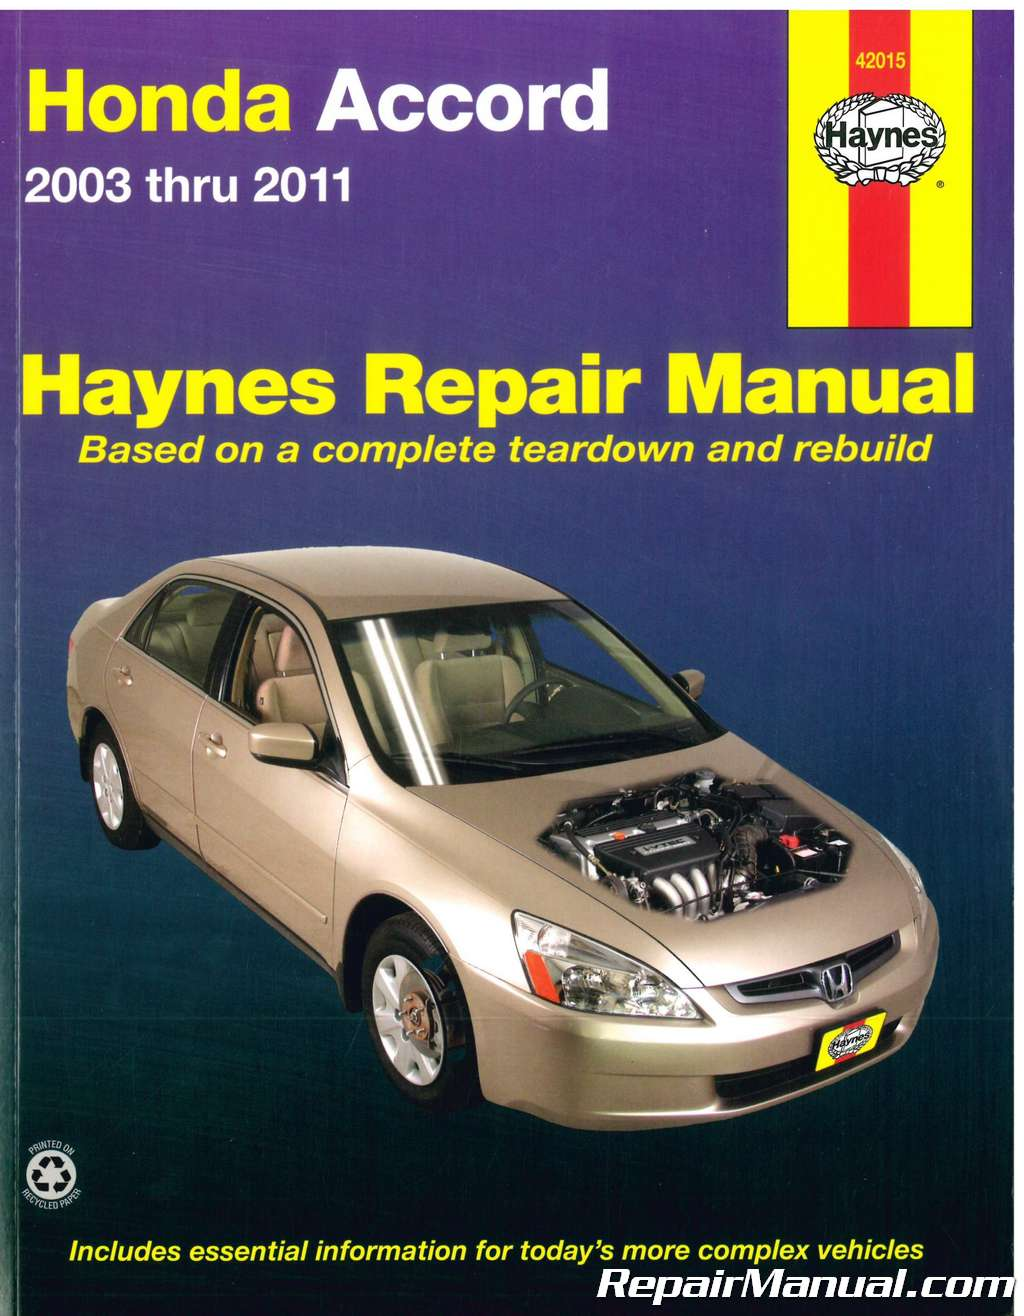 Haynes Honda Accord 2003 2011 Automotive Service Workshop